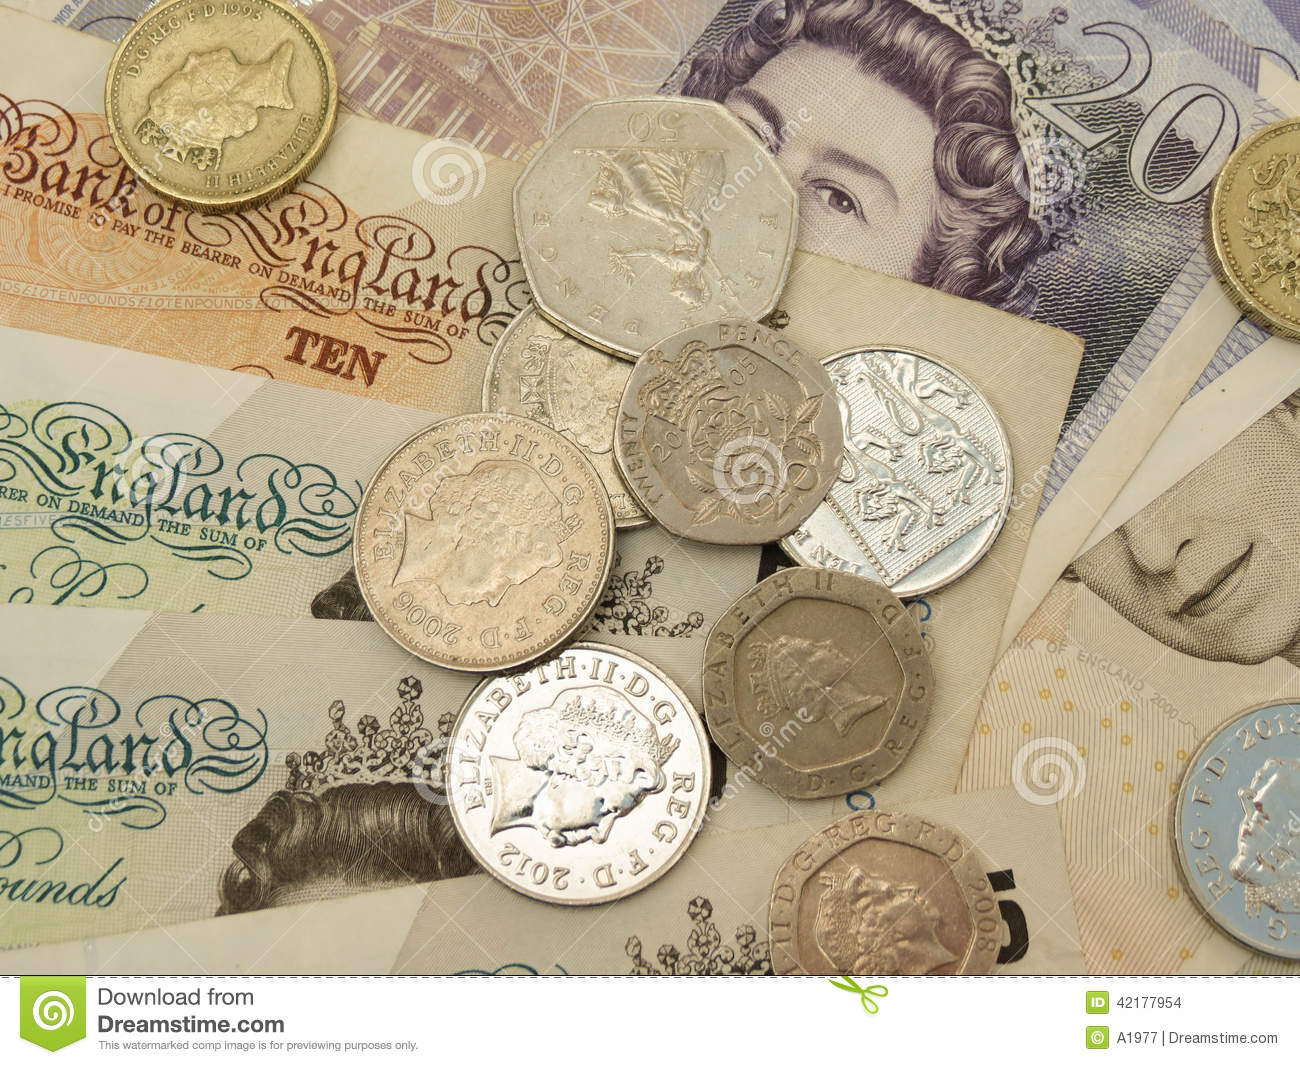 pound sterling and united kingdom The pound is the official currency of the united kingdom of great britain and northern ireland the pound sterling is the fourth most-traded currency in the foreign exchange market the pound sterling is the fourth most-traded currency in the foreign exchange market.